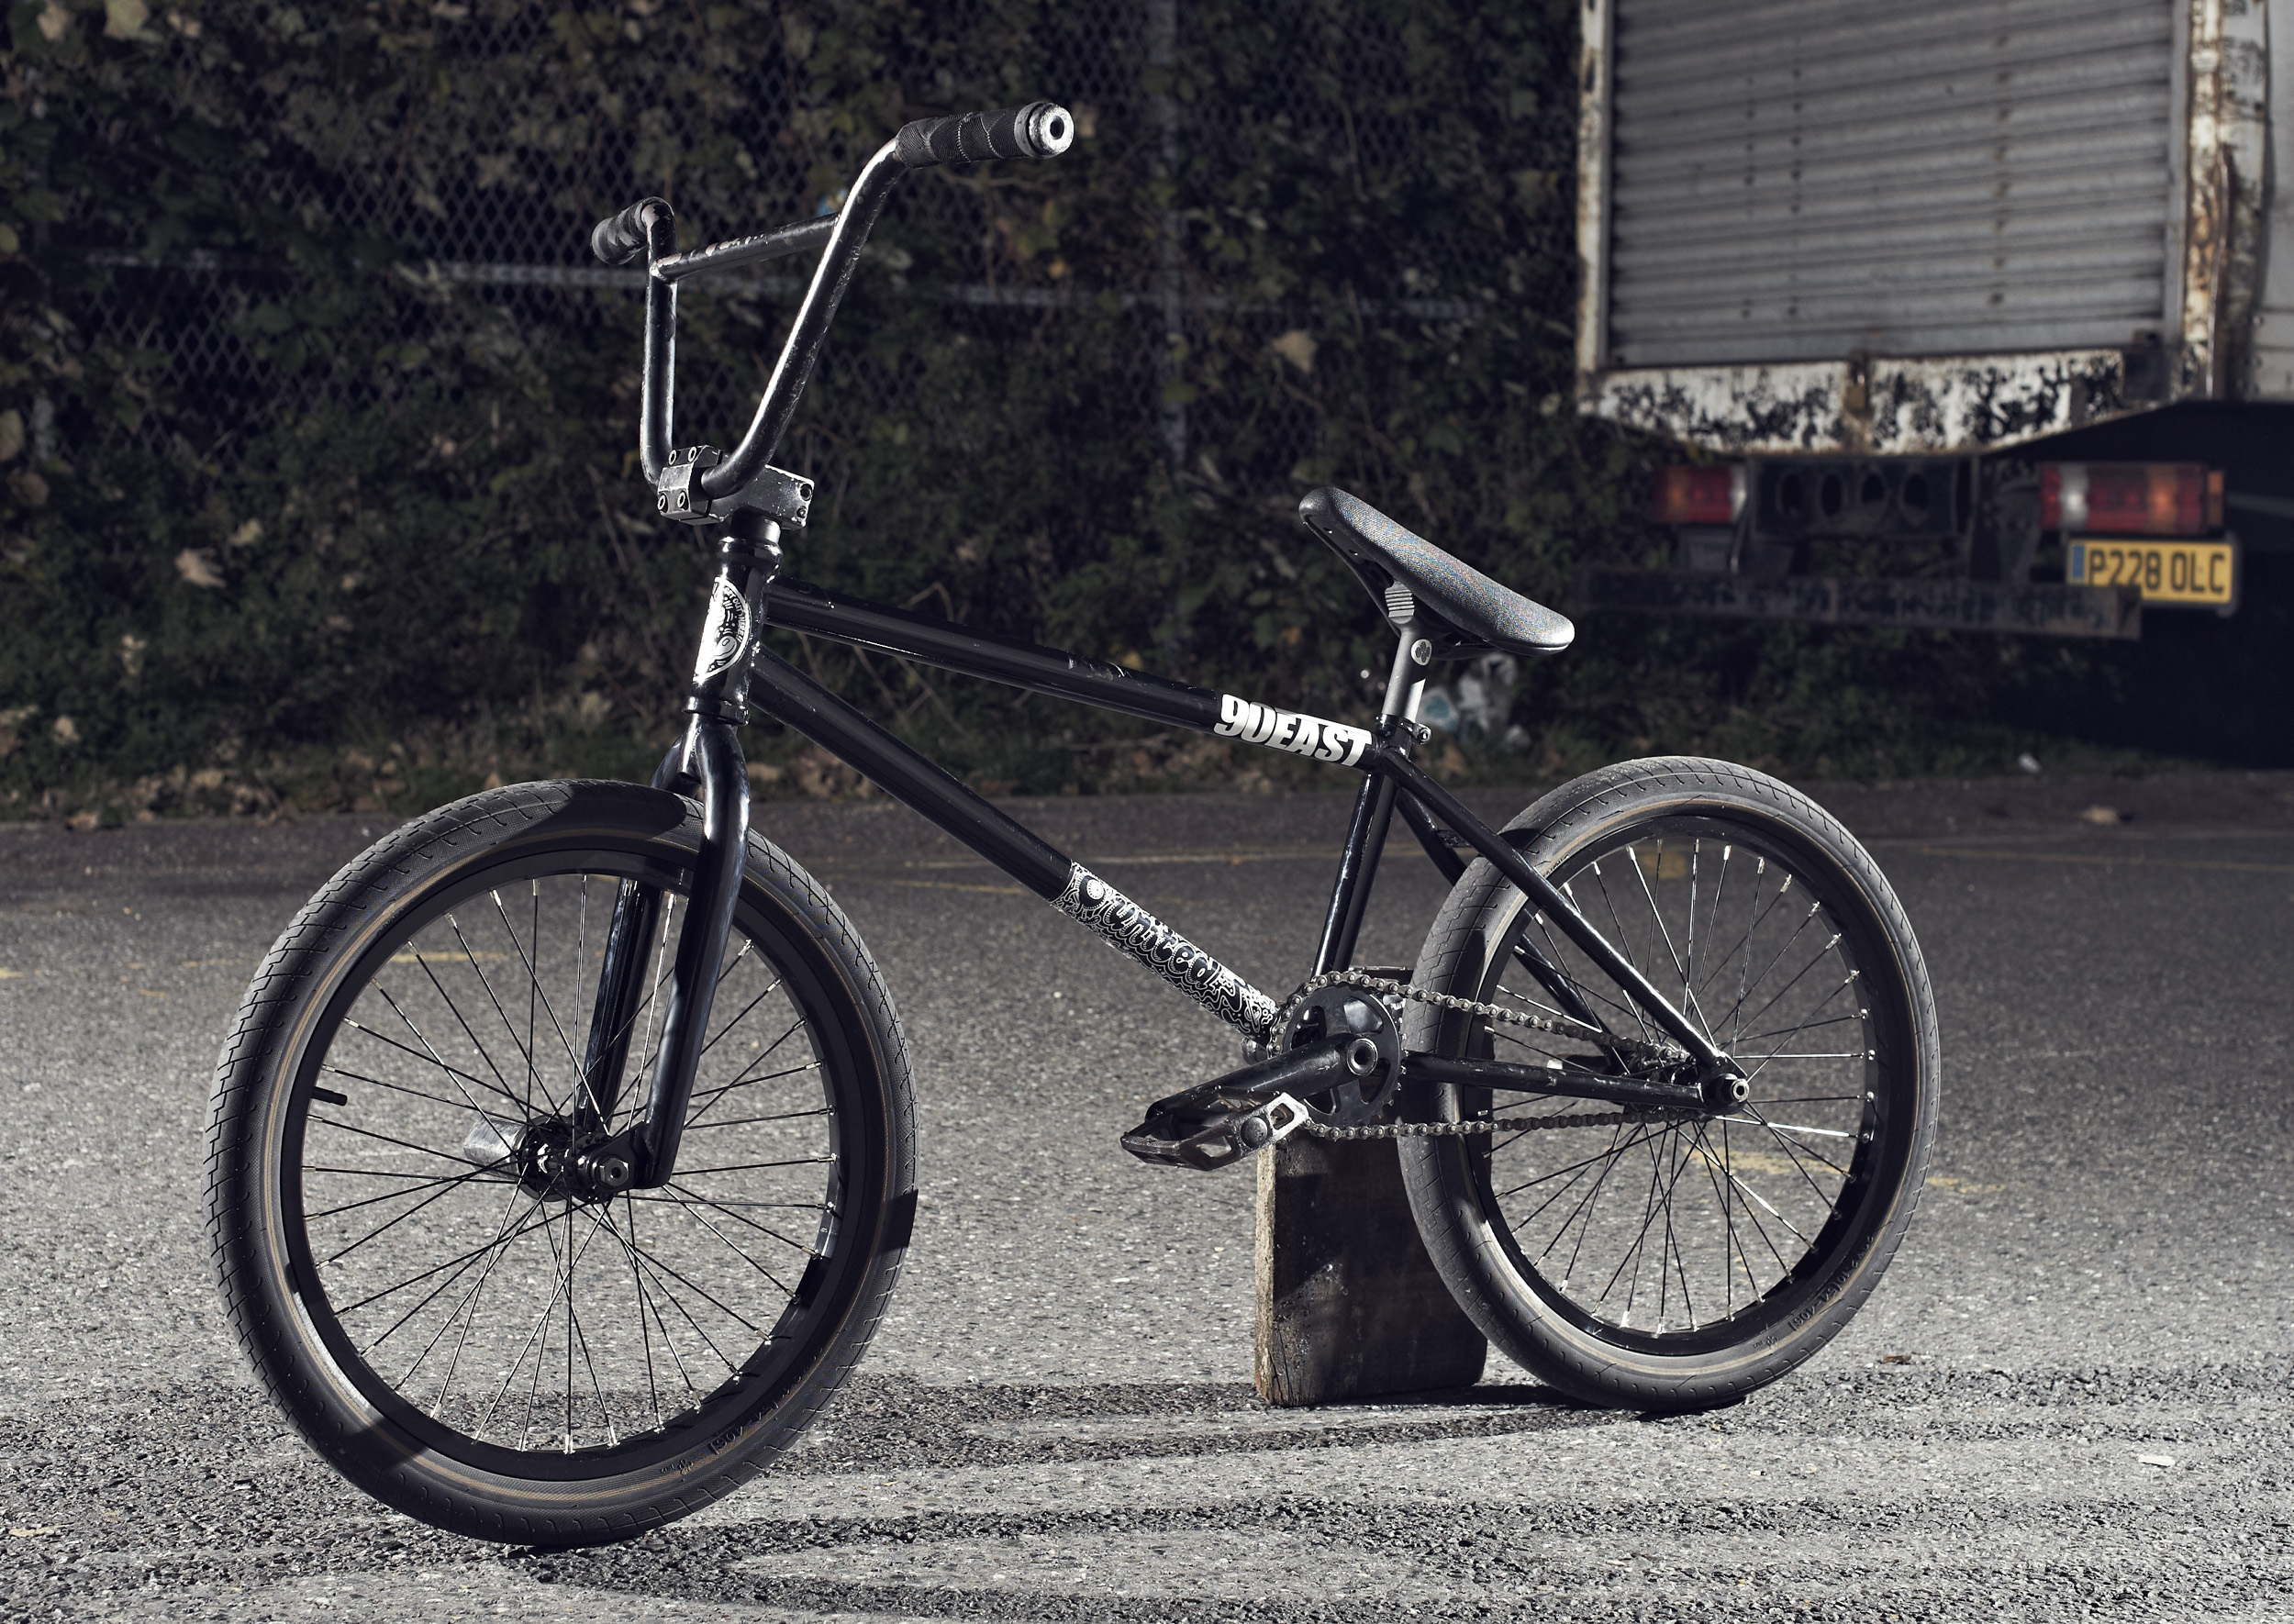 First Look Tom Sanders and the New United Region Frame DigBMX